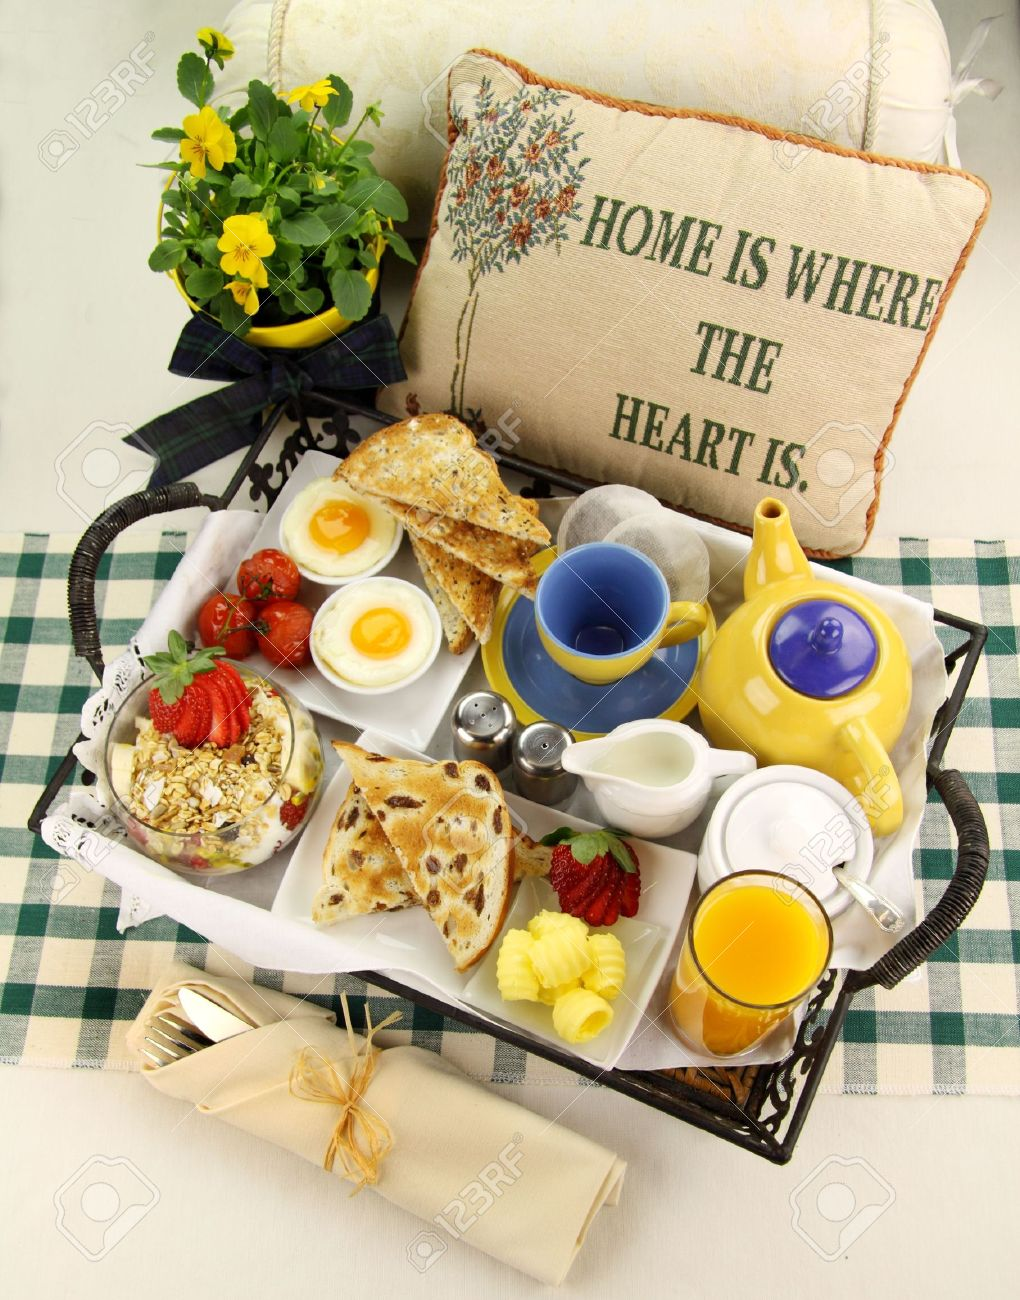 Delicious hearty breakfast tray prepared for a lazy Sunday morning. - 5067750